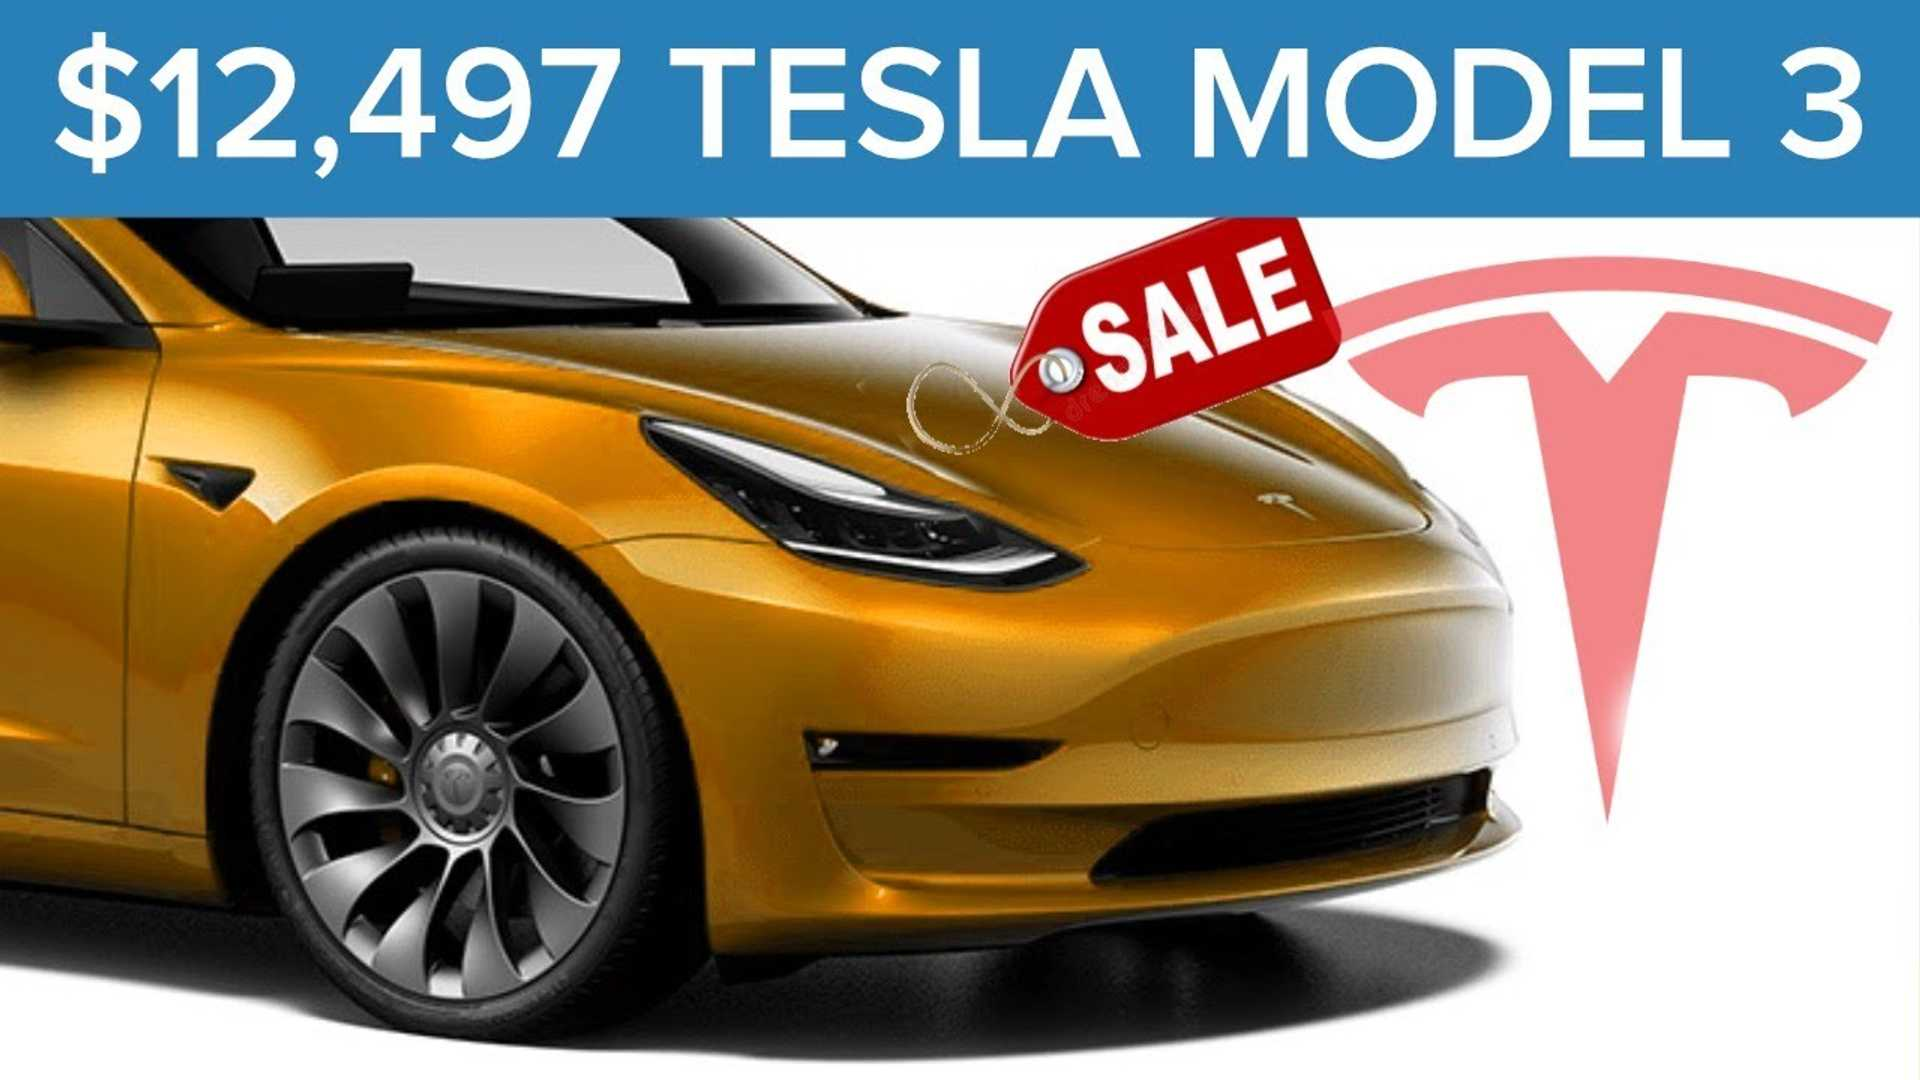 Can You Really Shave $25,000 Off The Price Of An Electric Car?